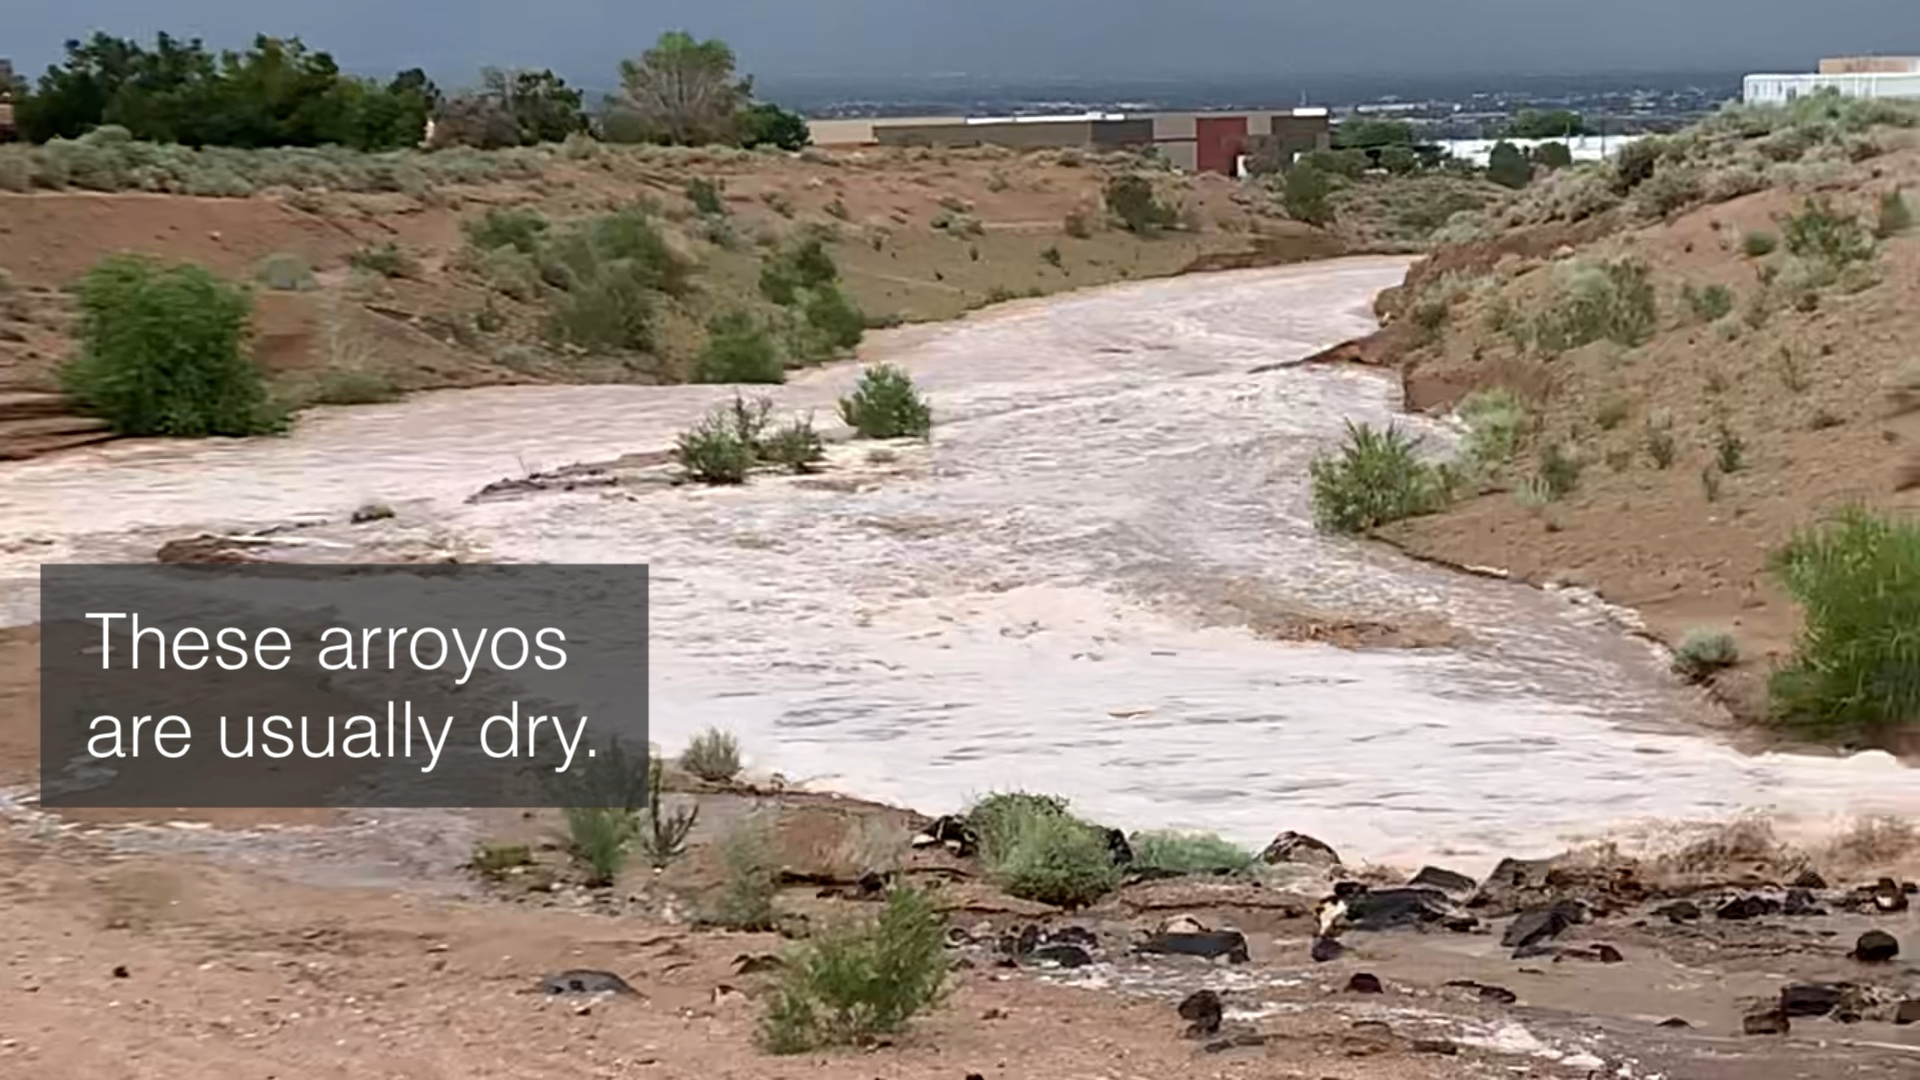 """Water rushing in a desert arroyo. Text over image states, """"These arroyos are usually dry."""""""